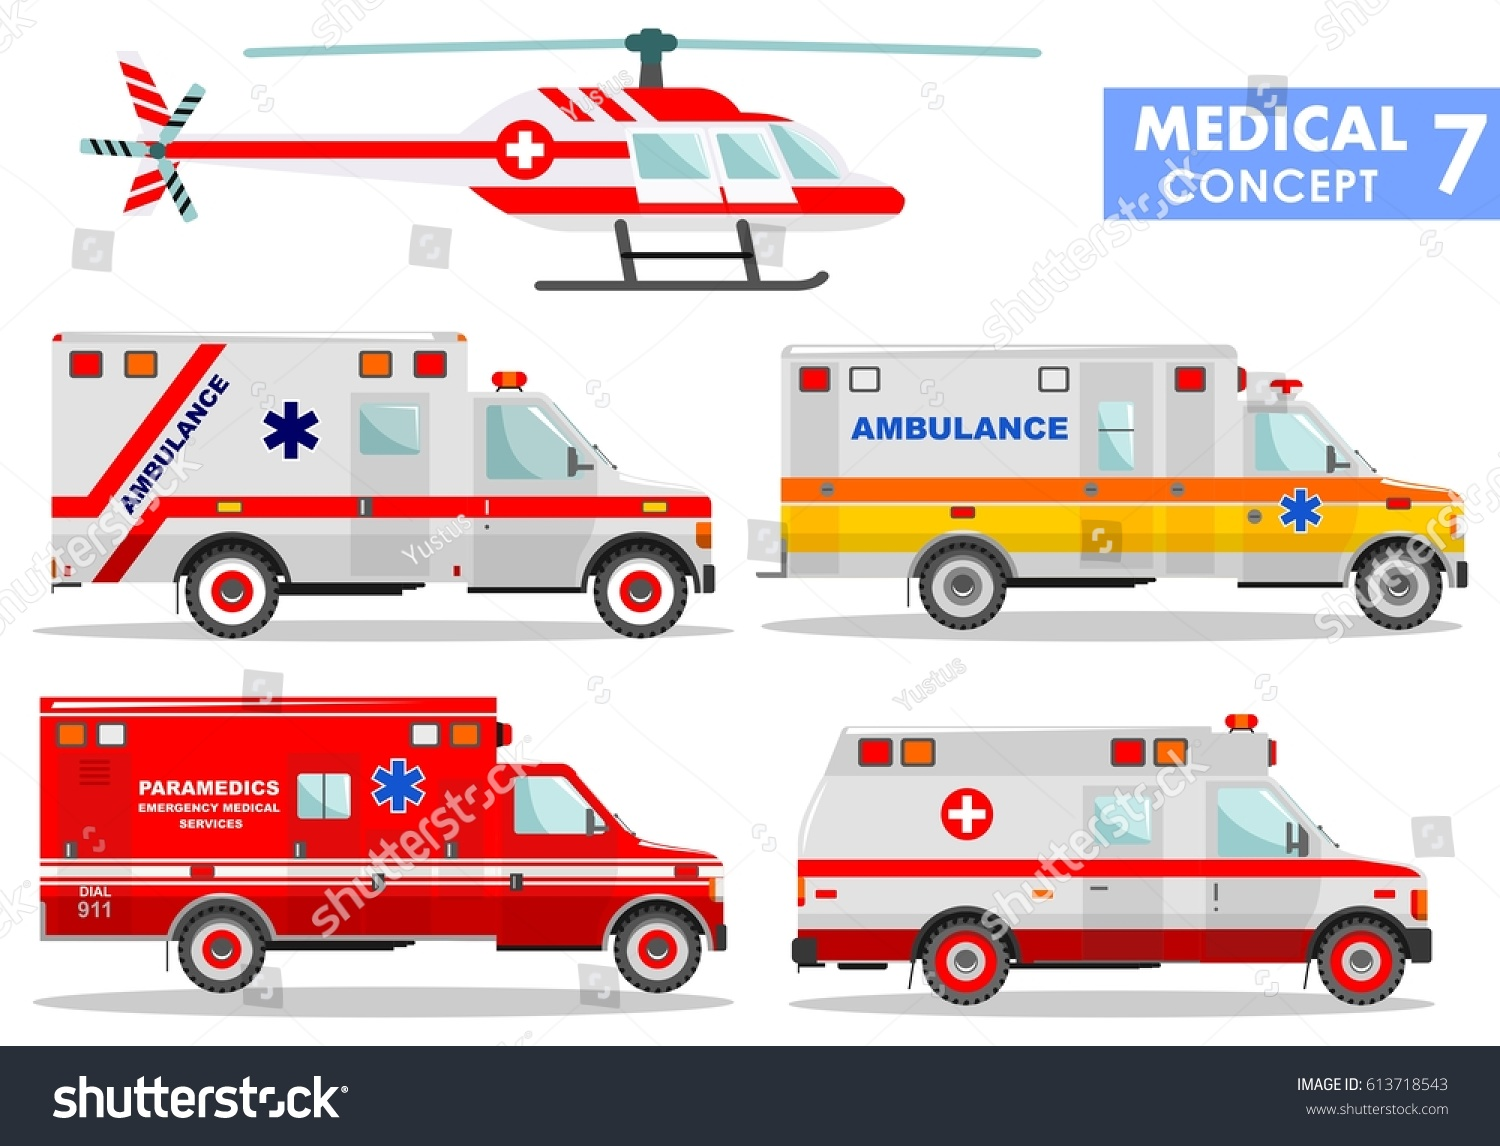 become a helicopter paramedic with Medical Concept Detailed Illustration Ambulance Cars 613718543 on Cheerful peanut butter and jelly cartoon friends tshirt 235230066168443991 together with Youll Not Get Me Gold Leprechaun T further Malibu Power Goes Out When Car Hits Power Pole in addition Qld Ambulance Service Paramedics Buderim likewise Airedale terrier valentines gifts tee shirt 235000064821449943.